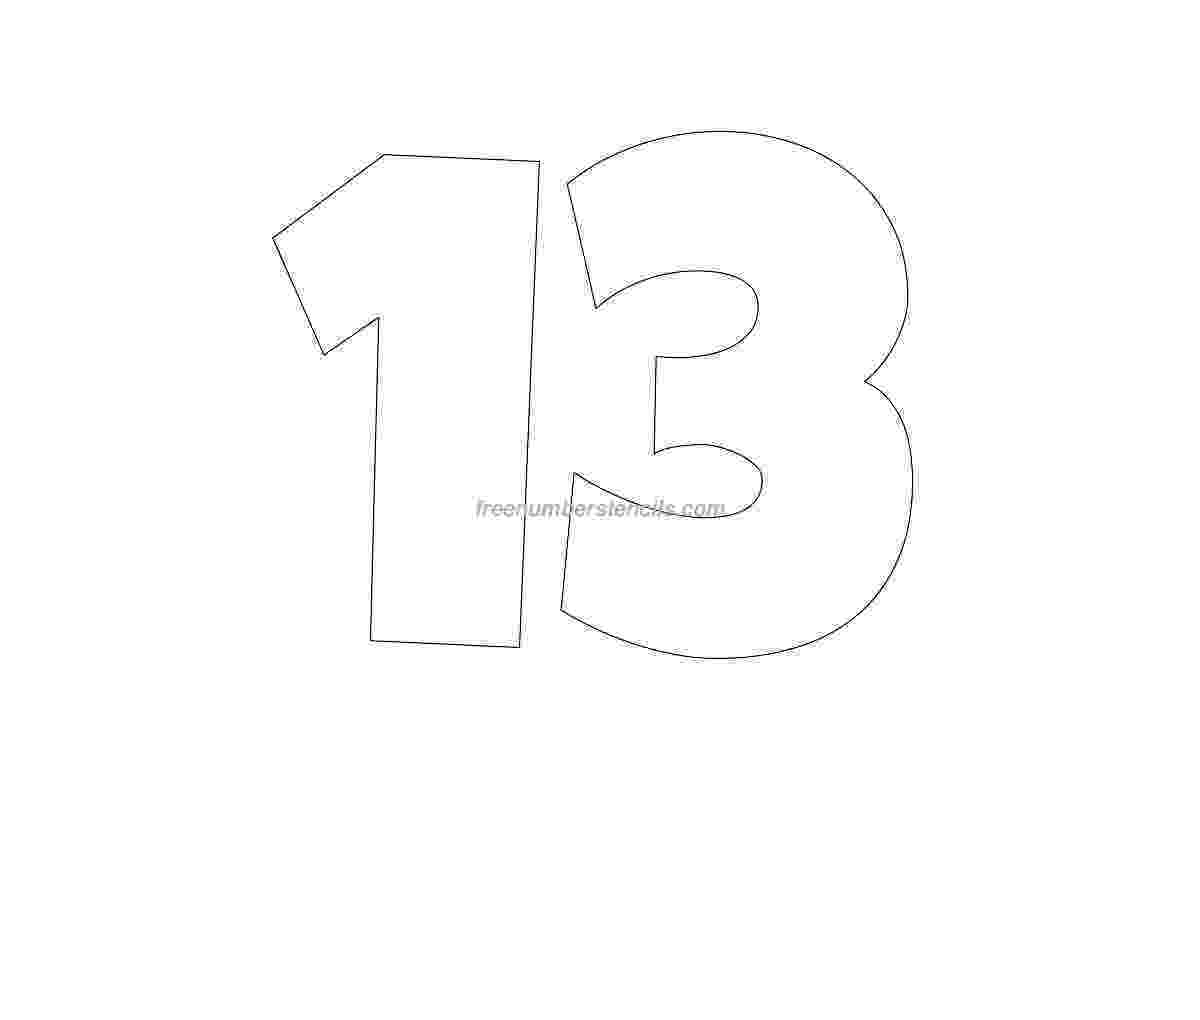 number 16 template number 16 template pictures to pin on pinterest pinsdaddy 16 number template